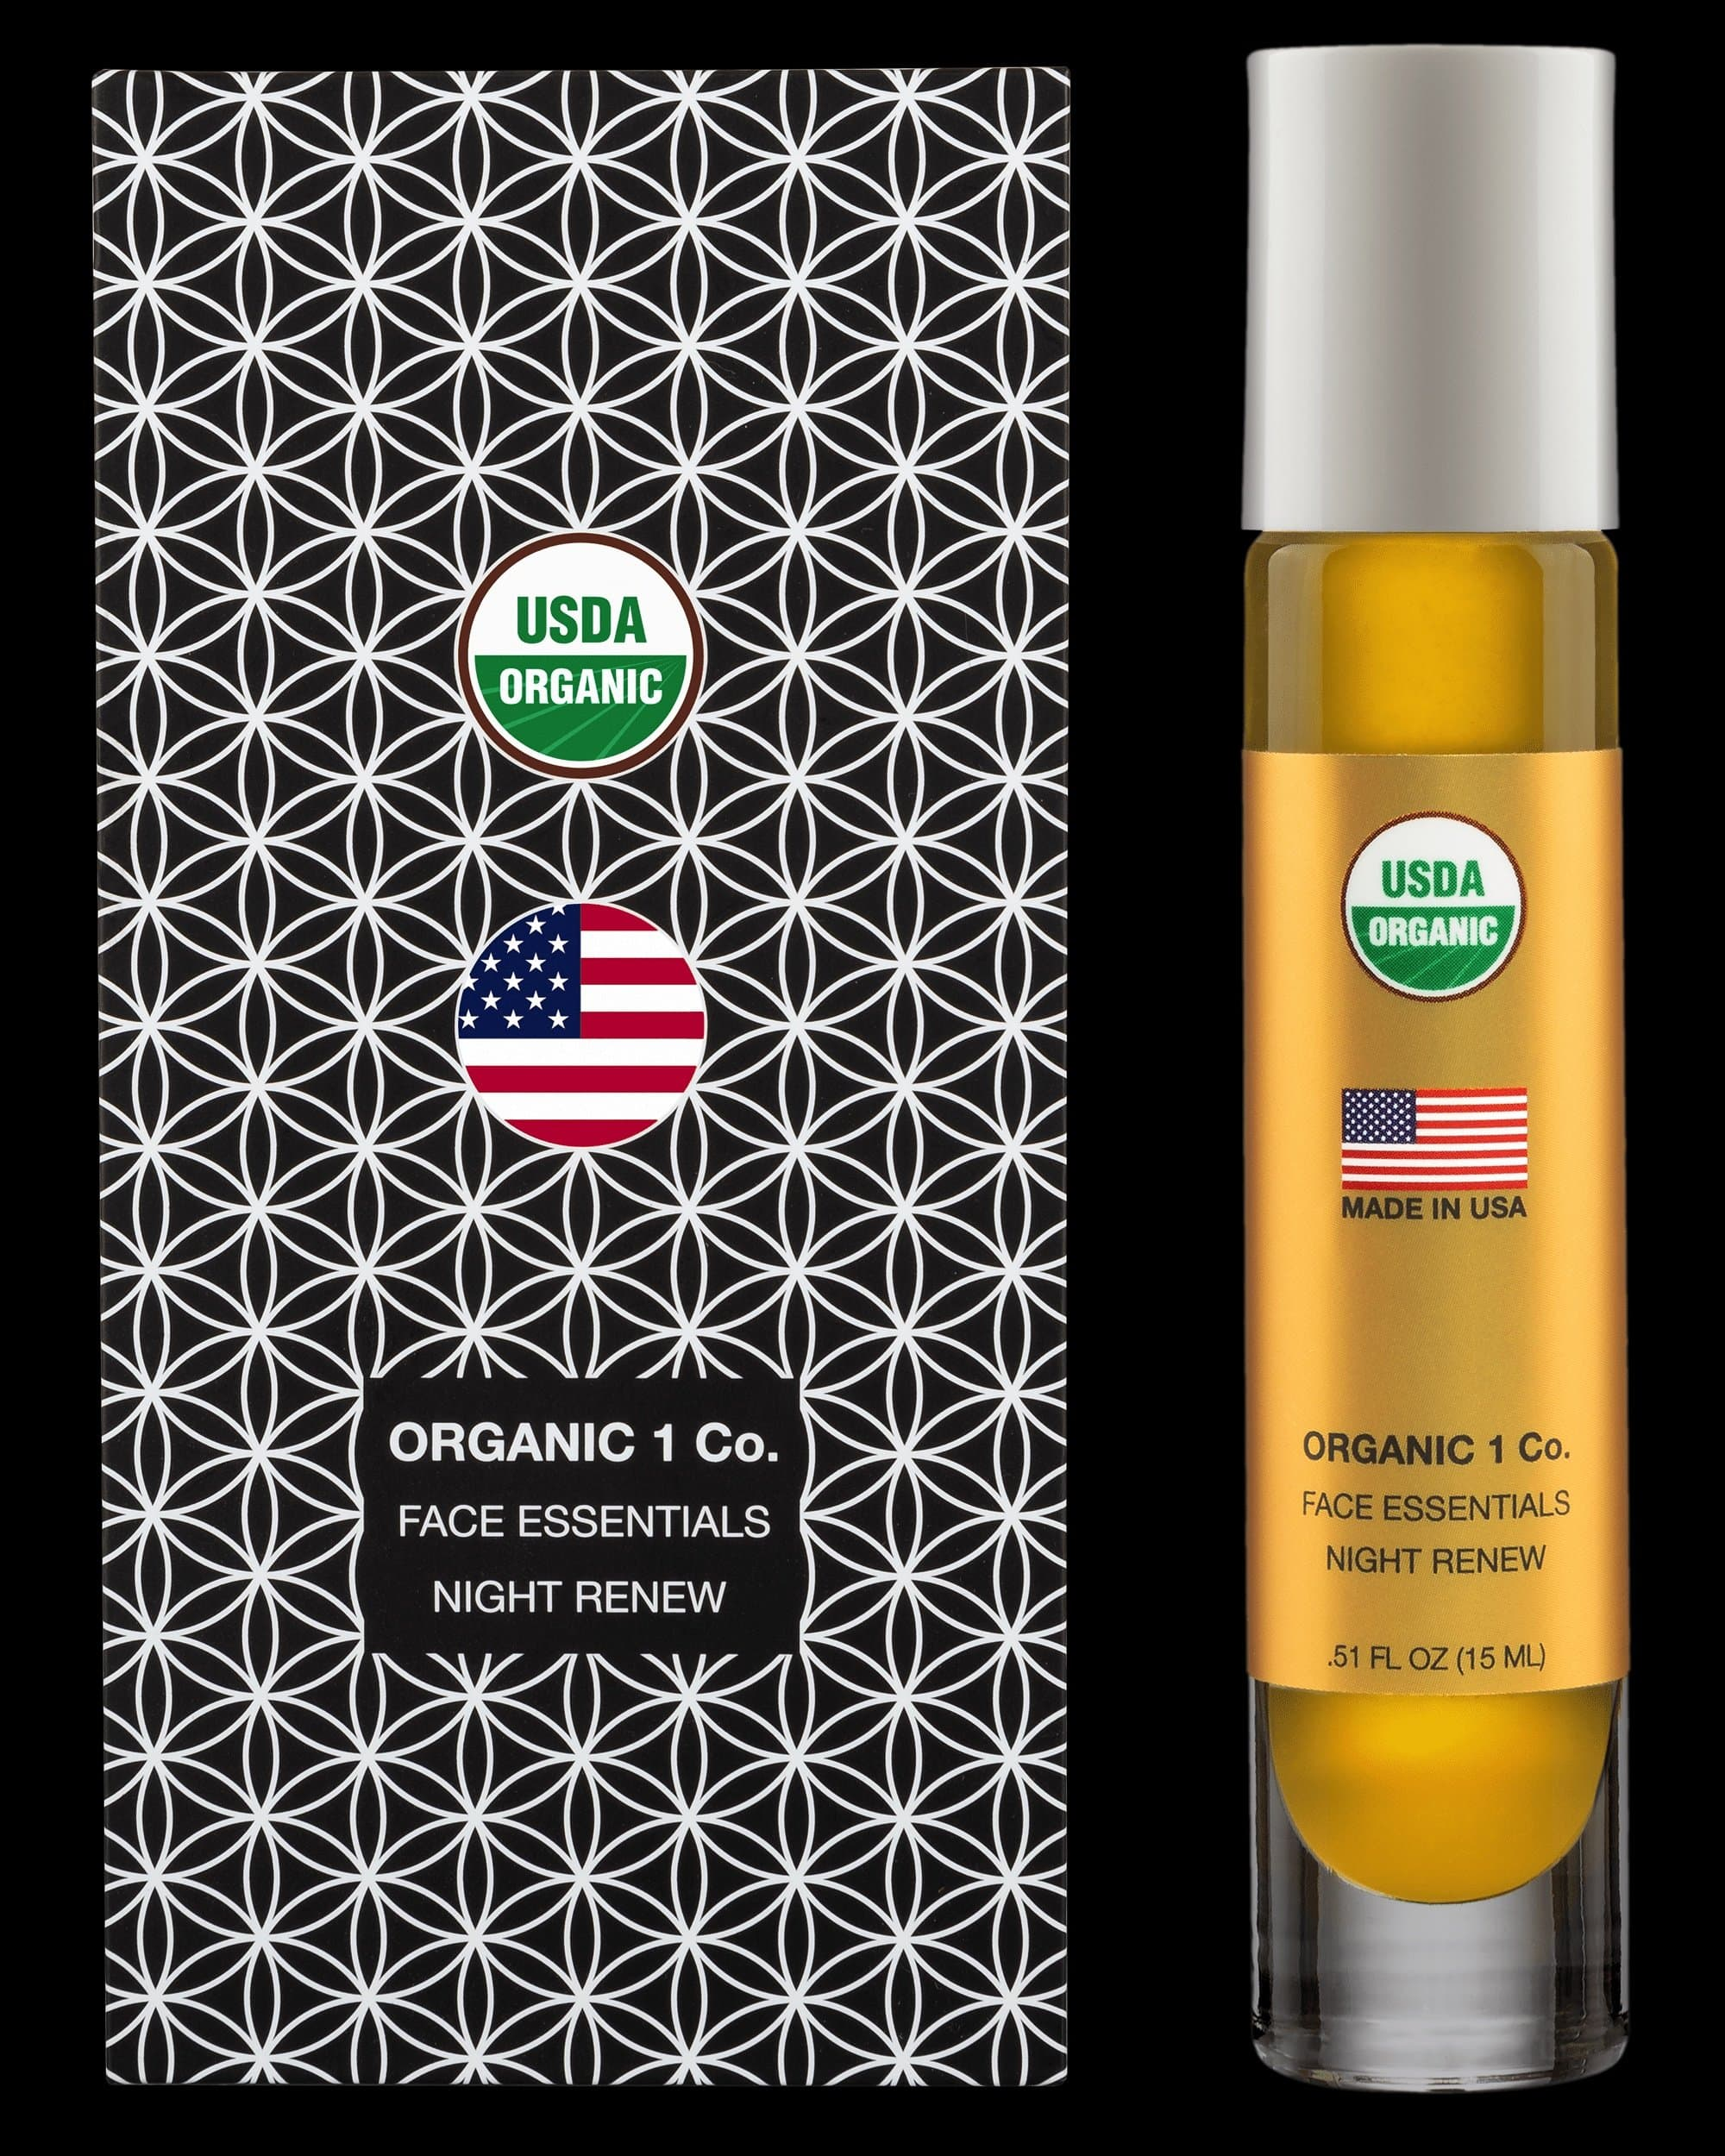 Face Essentials Night Renew moisturizer front of box and bottle. USDA Organic anti aging Face Oil